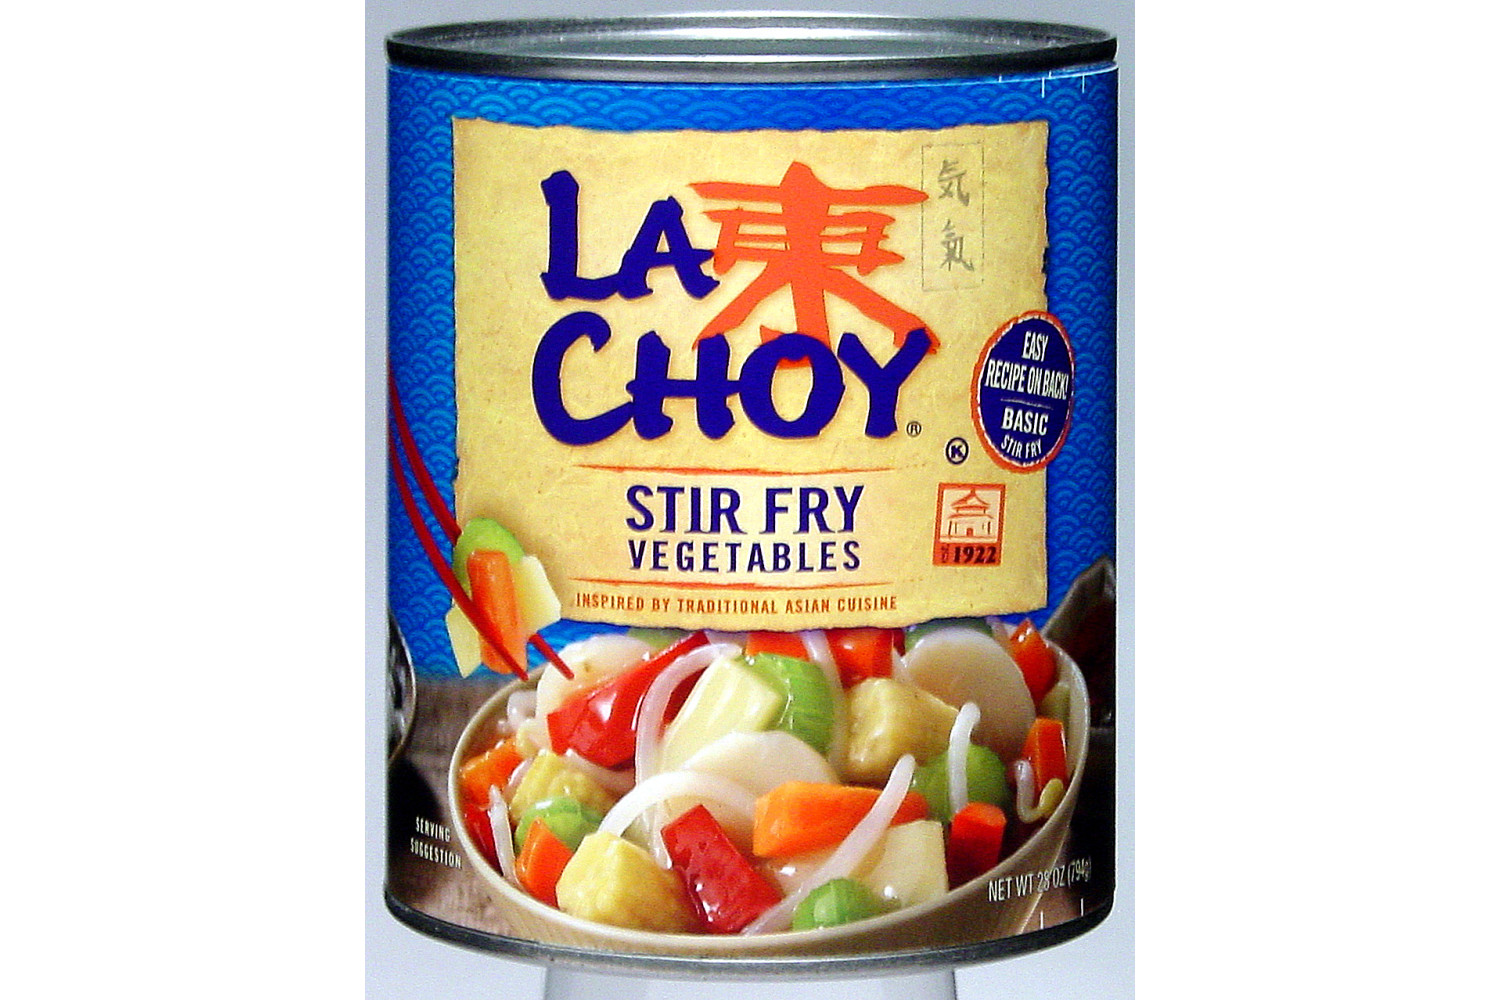 LA CHOY Stir Fry Vegetables